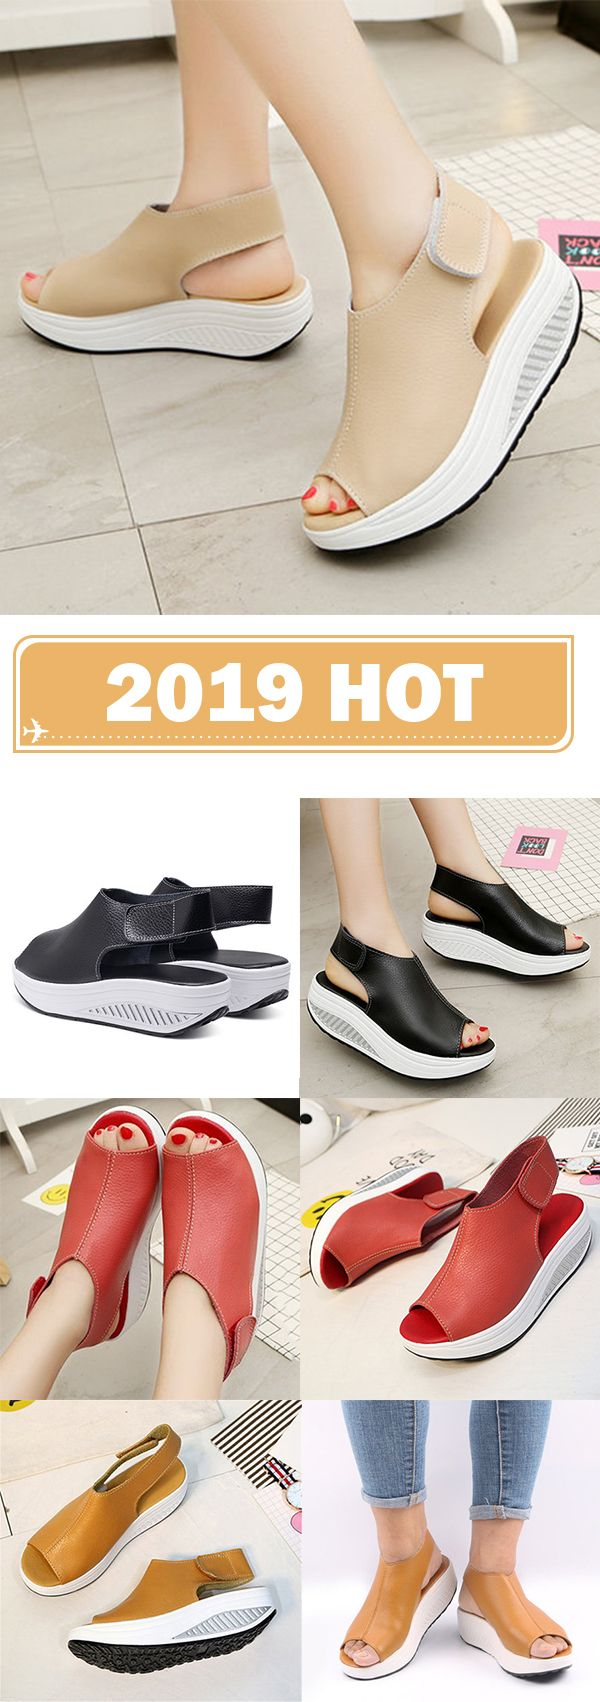 a32950607285 Sandals Casual Wedge Heel Sandals Microfiber Leather Magic Tape Shoes